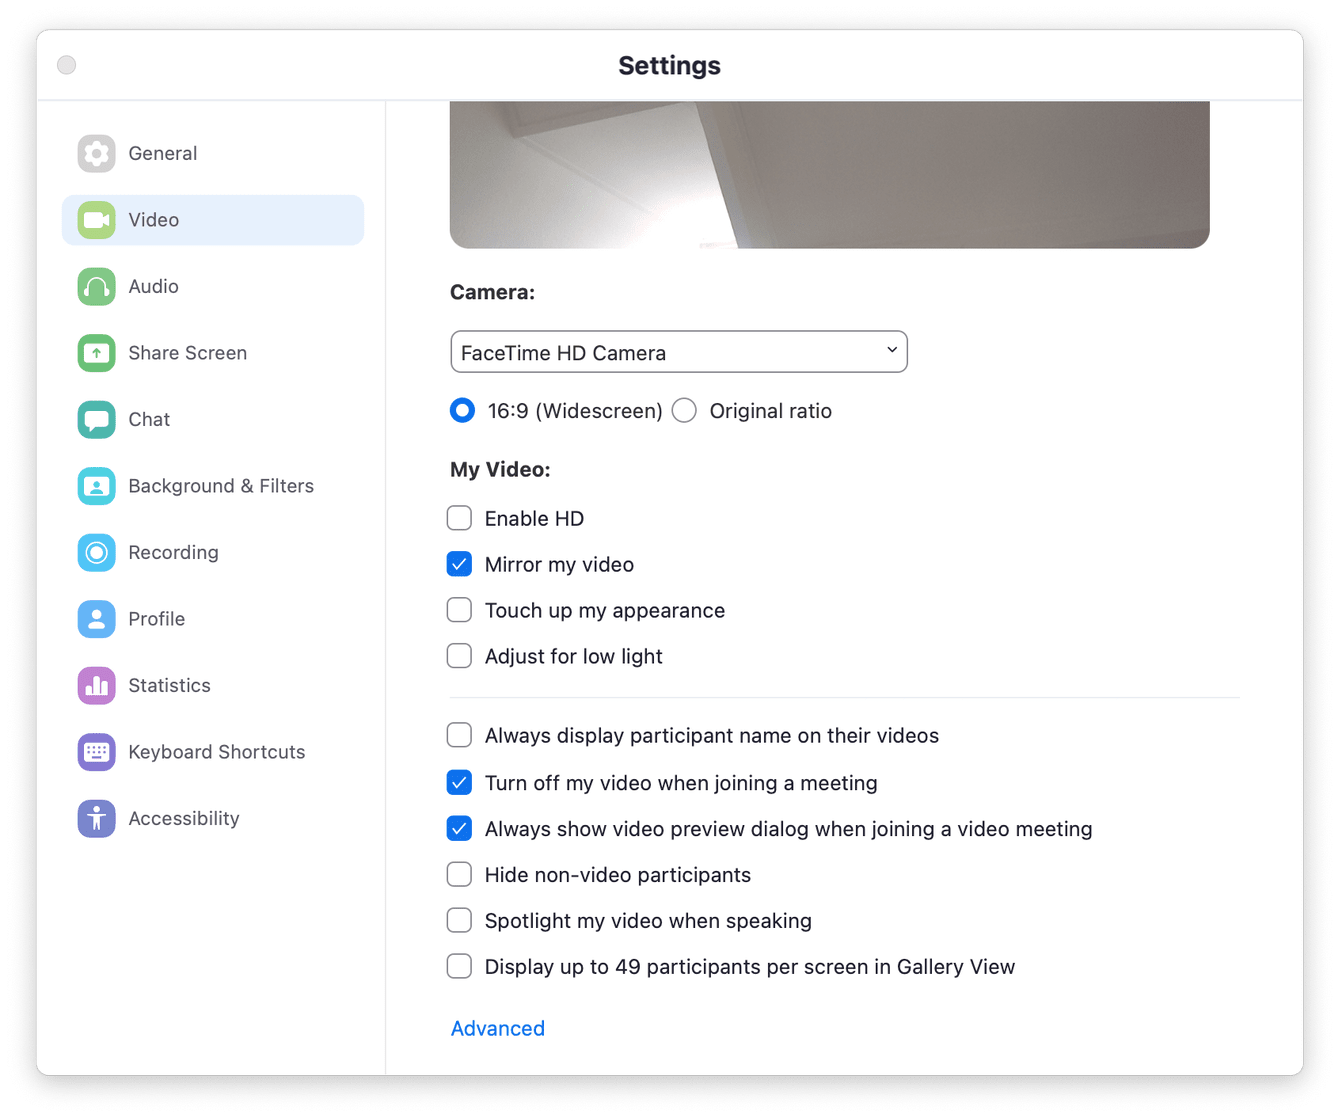 How to check app settings (in Zoom)